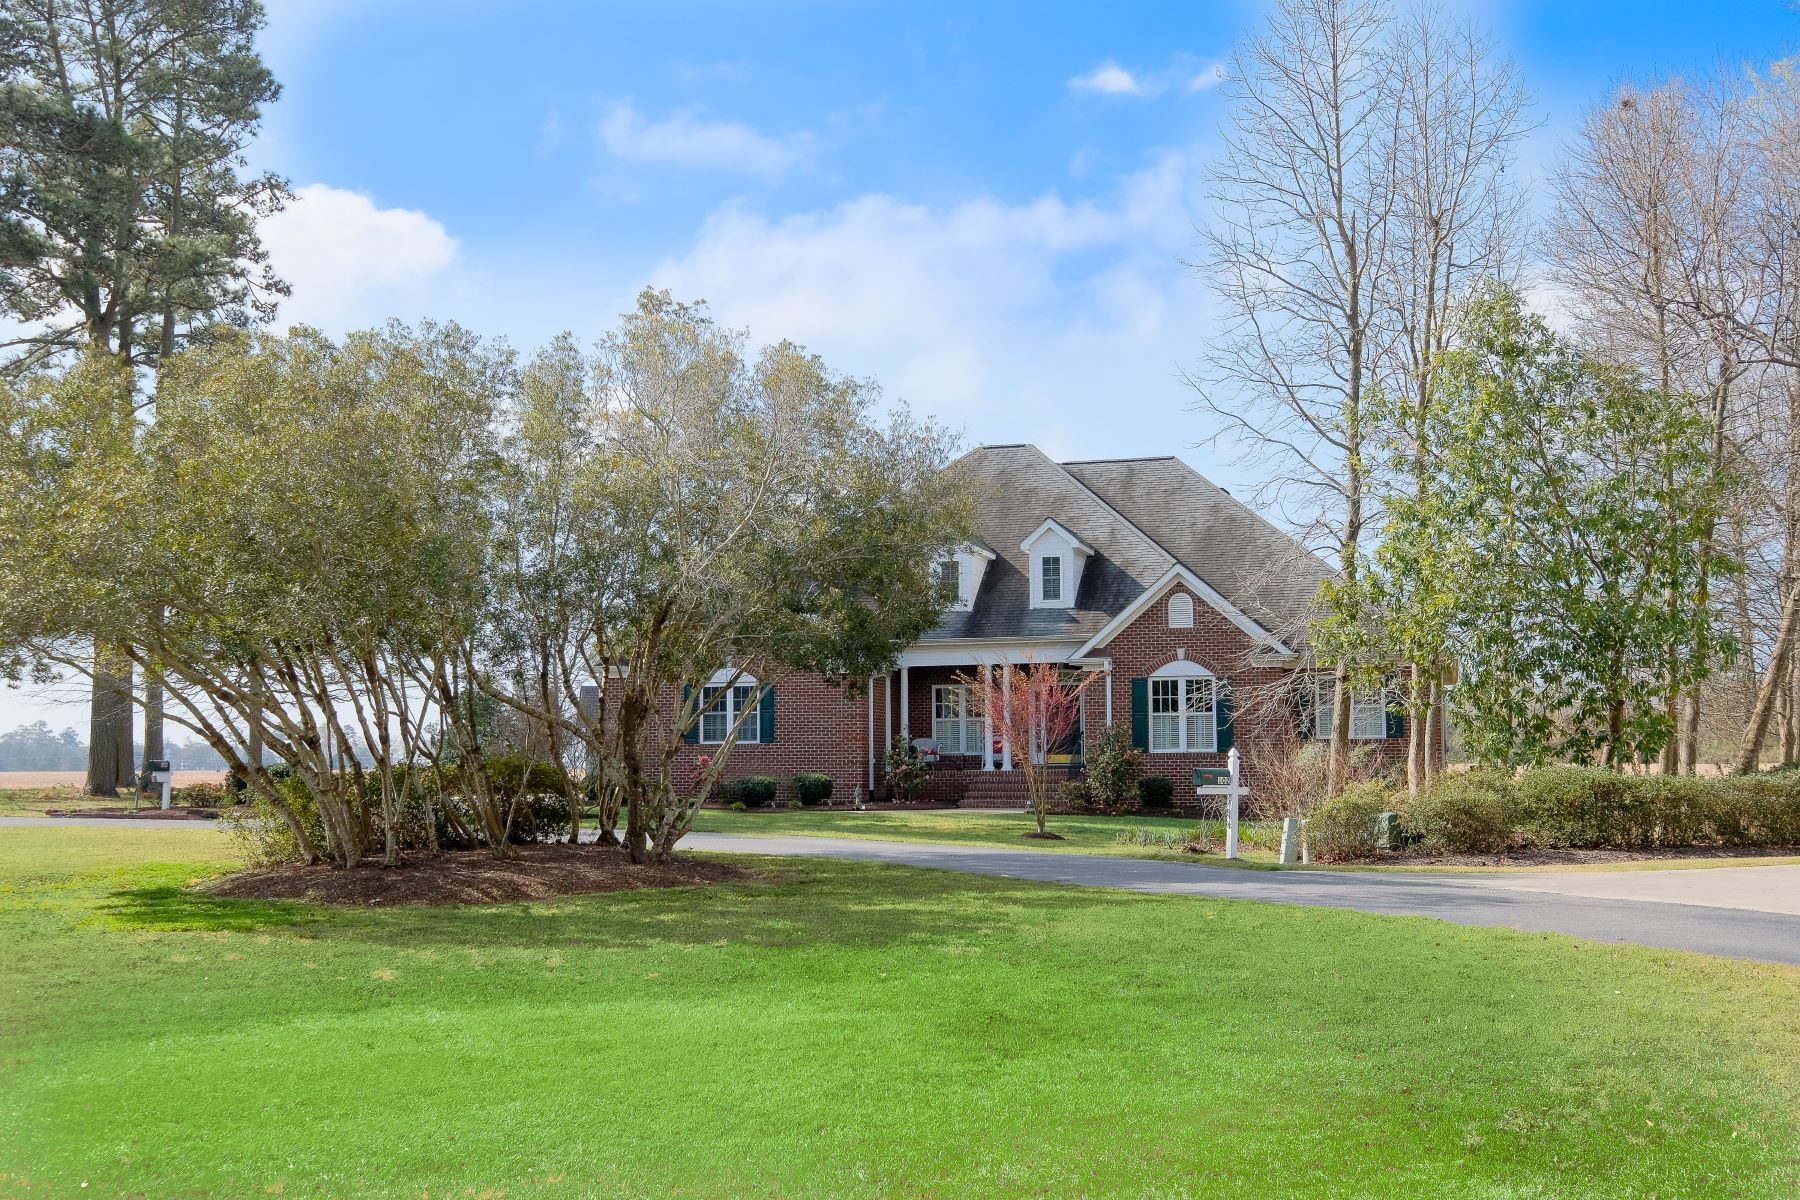 واحد منزل الأسرة للـ Sale في COMFORTABLE LIVING IN EDENTON BAY 104 Brickell's Glade Circle, Edenton, North Carolina, 27932 United States